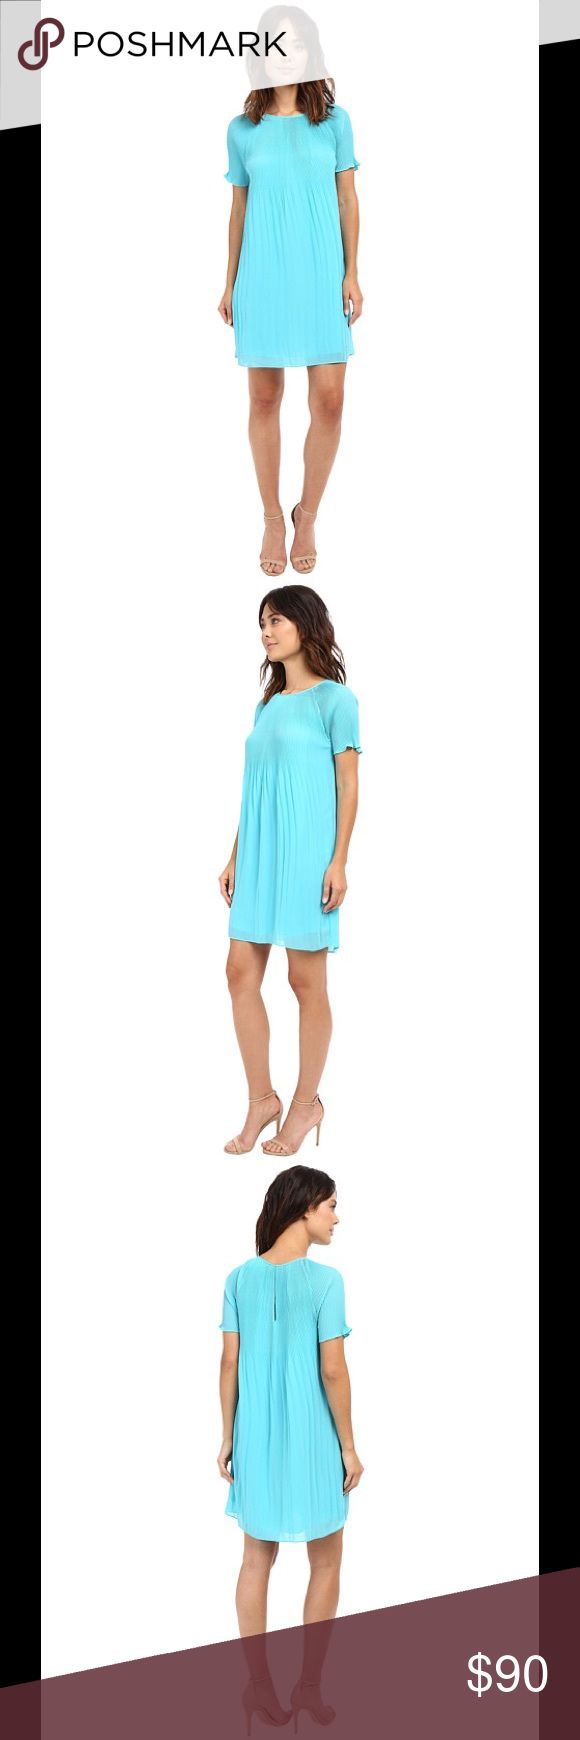 Michael Kors Pleated Shift Dress Turquoise size M MICHAEL Michael Kors Women's Pleated Shift Dress. In color Turquoise. Size M. Material Polyester, lining Polyester. Scoop Neckline. Back Keyhole Button Closure. Short Sleeves. Allover Pleats. Shift Silhouette. Lined. Hits Above Knee. Pretty pleats define this flawless shift dress in Turquoise from MICHAEL Michael Kors. It's the perfect pick for date night and beyond. Made in China. MSRP $150. MICHAEL Michael Kors Dresses Mini